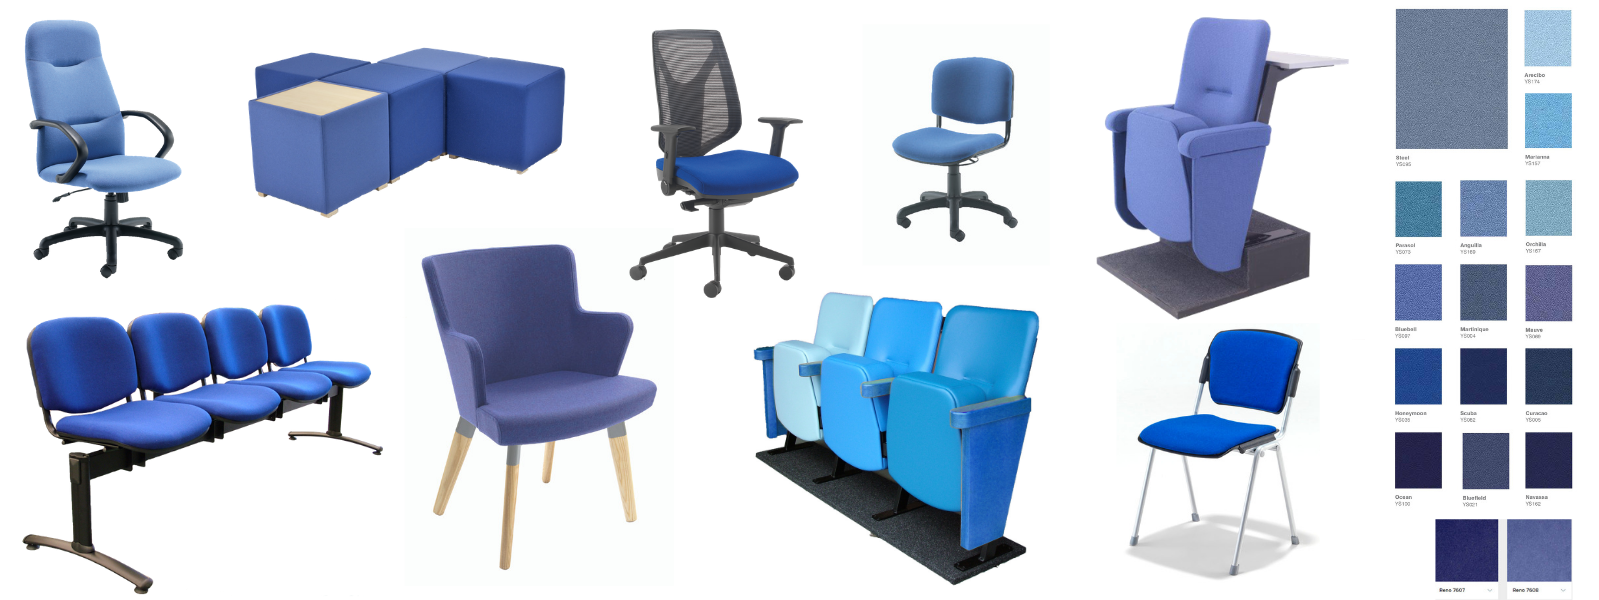 Selection of different chair styles in a variety of blue fabrics with colour swatches